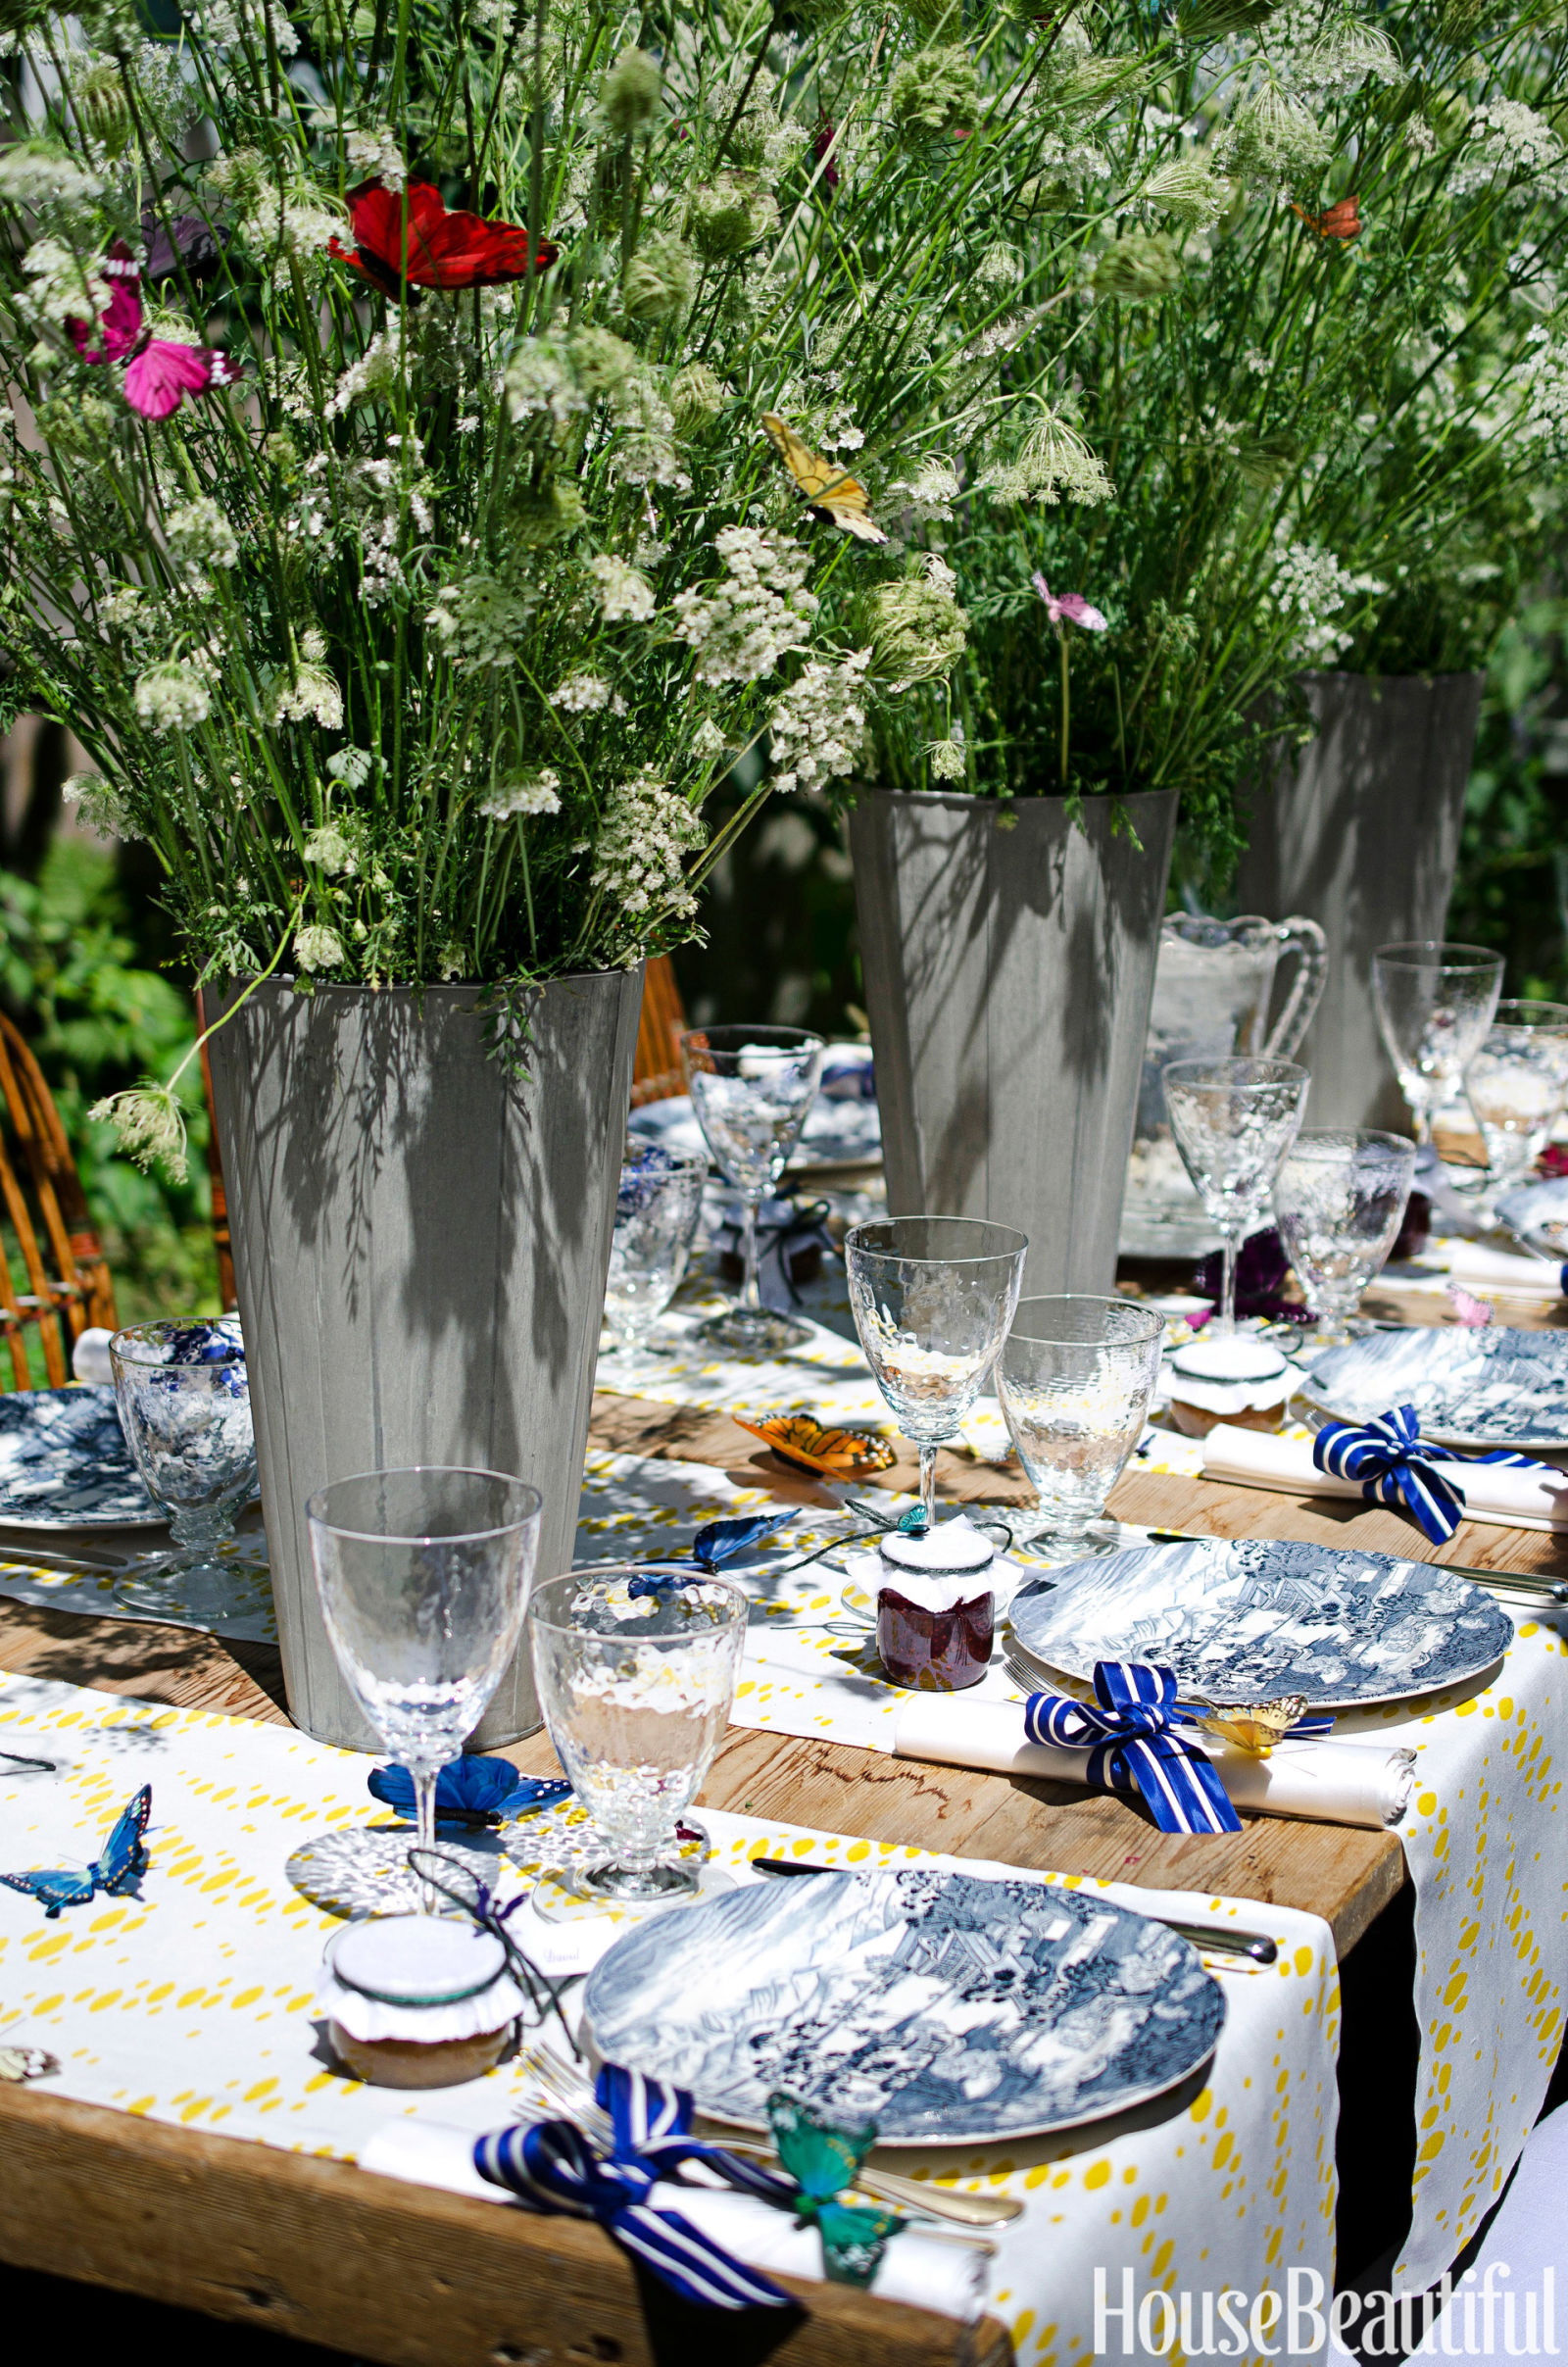 spring table setting ideas - spring tablescapes